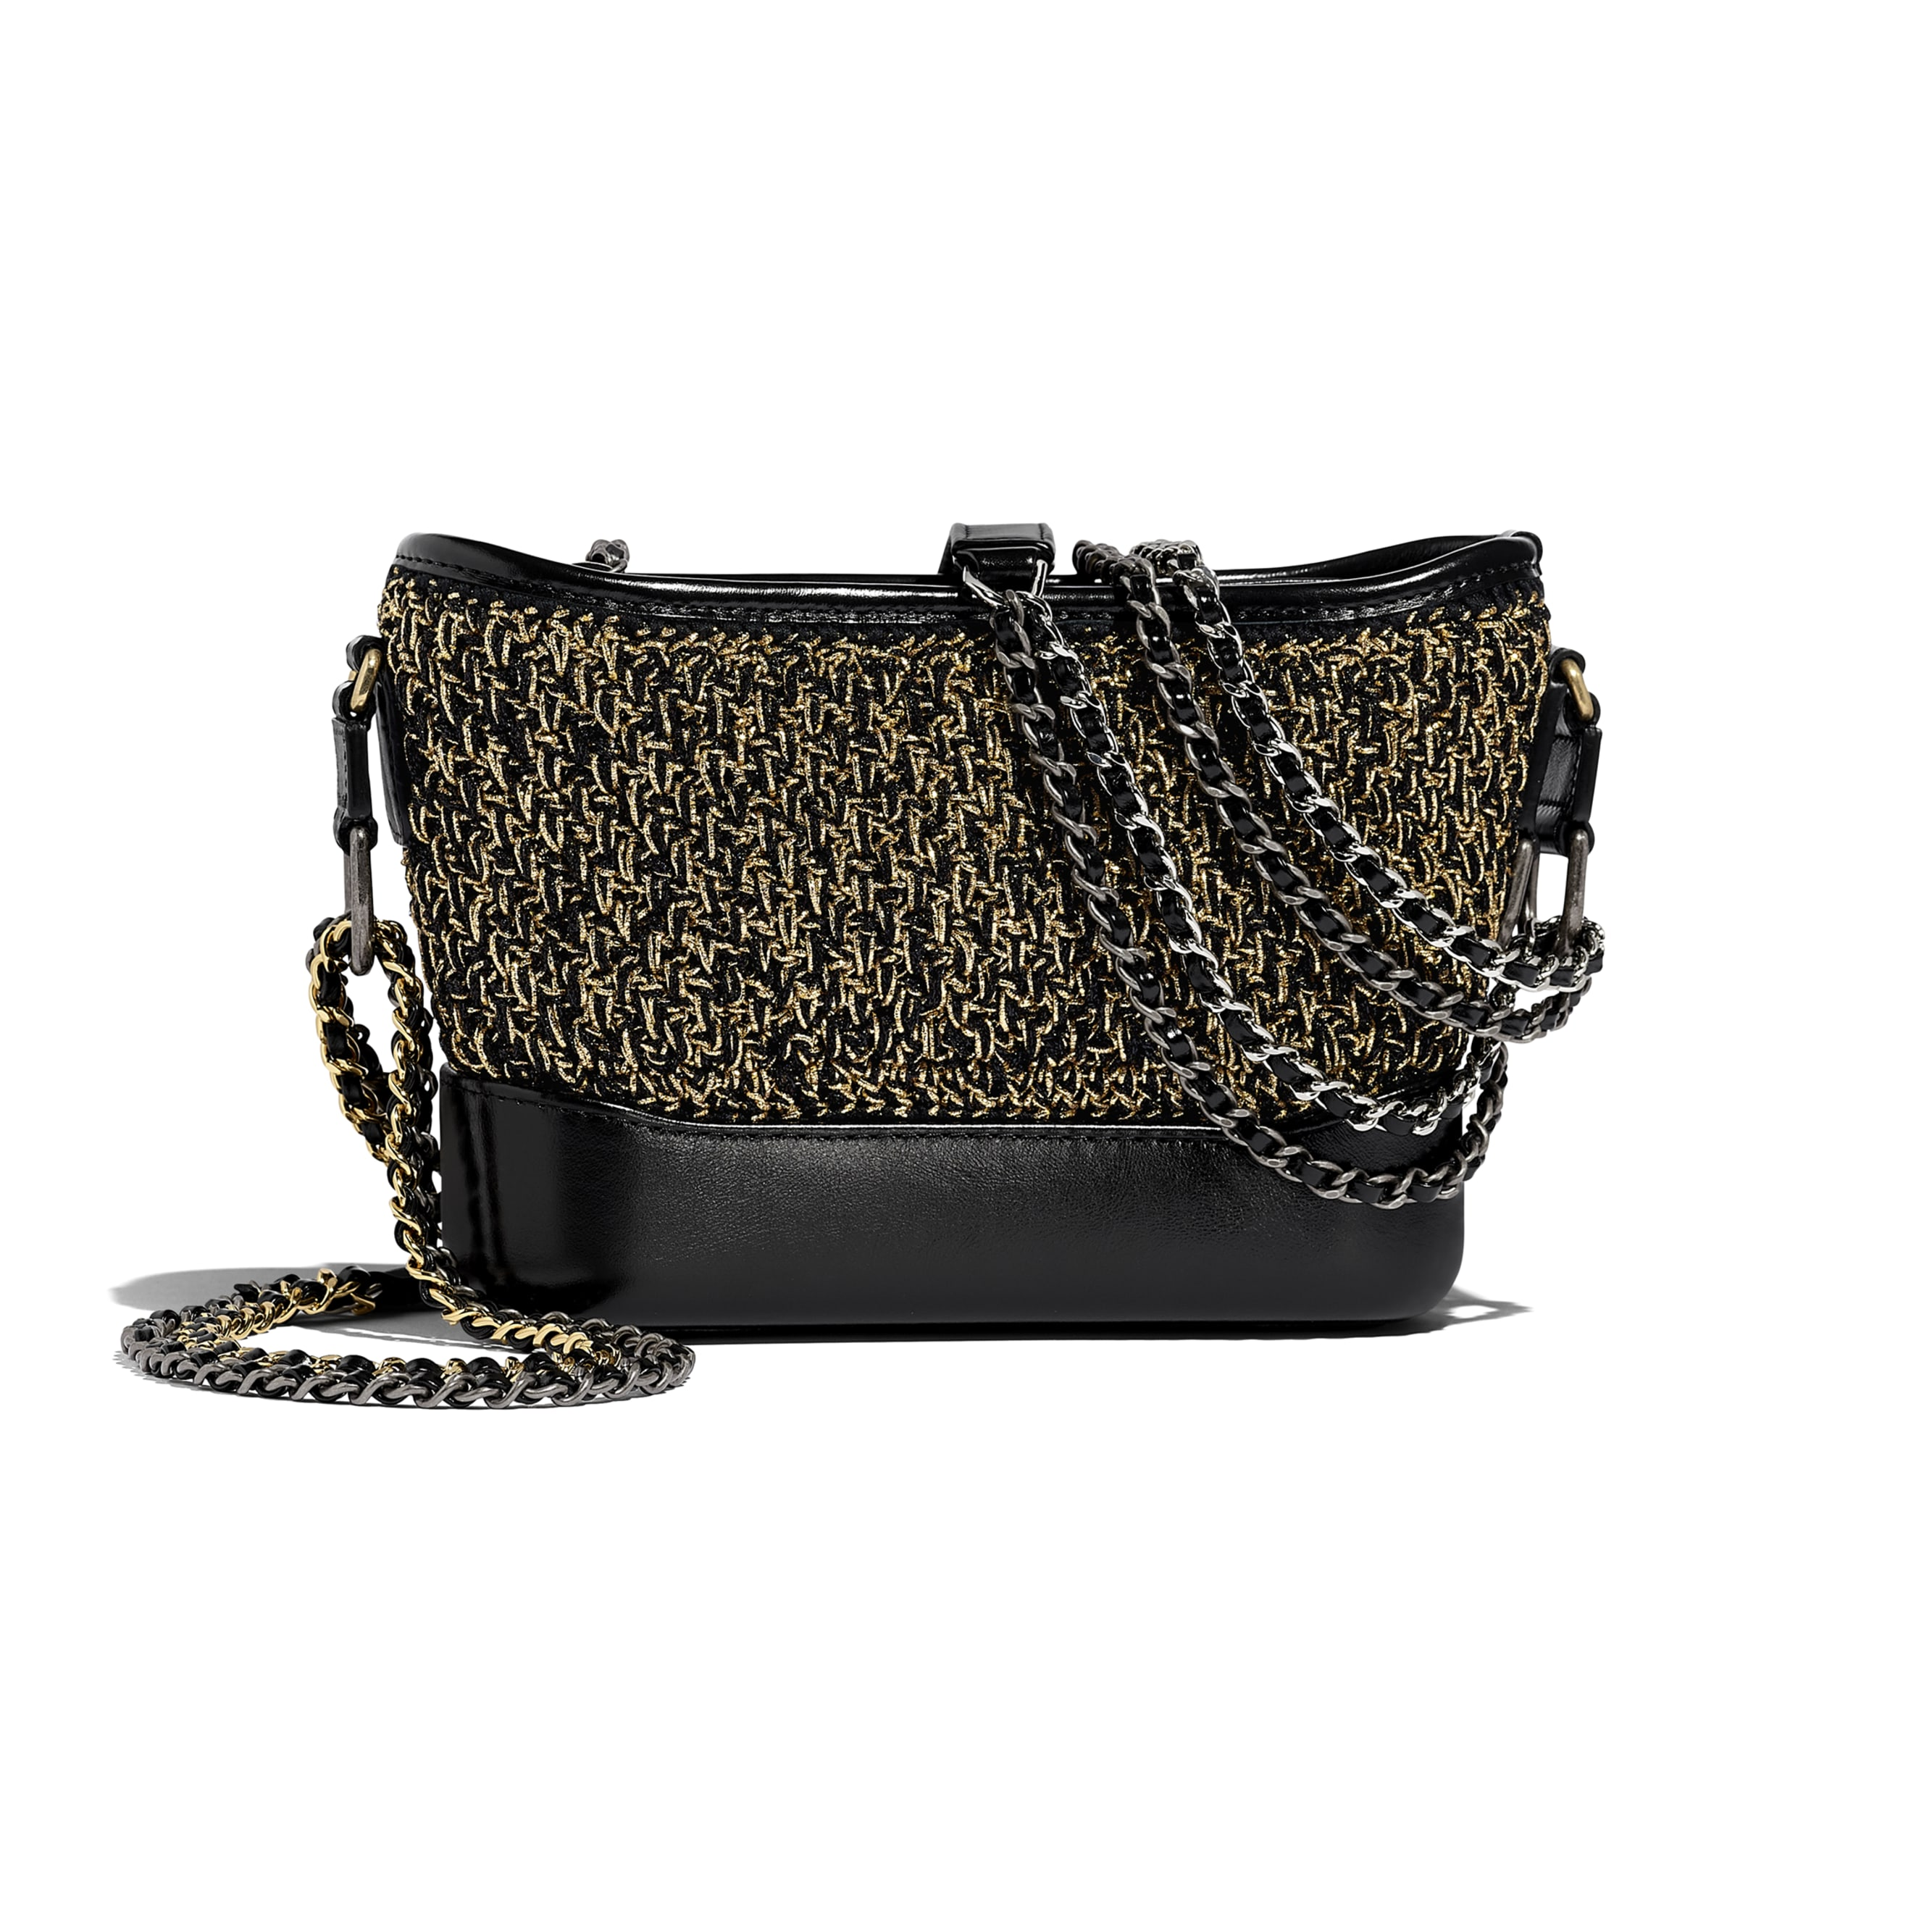 CHANEL'S GABRIELLE Small Hobo Bag - Black & Gold - Cotton, Calfskin, Gold-Tone & Silver-Tone Metal - Alternative view - see standard sized version